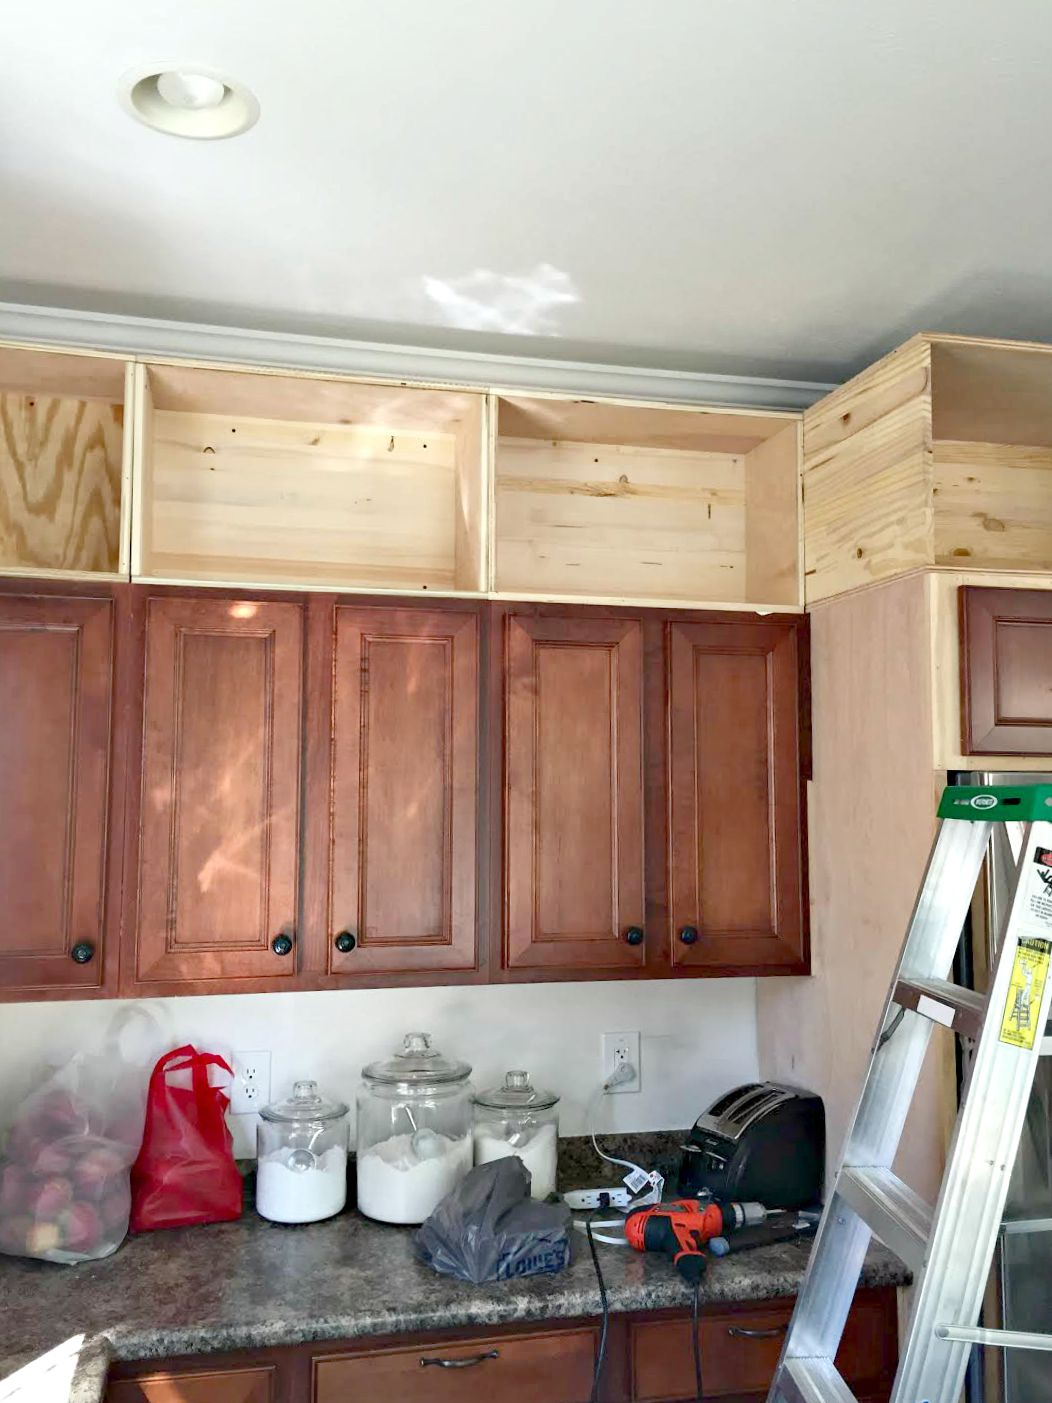 Medium image of adding cabinets above cabinets